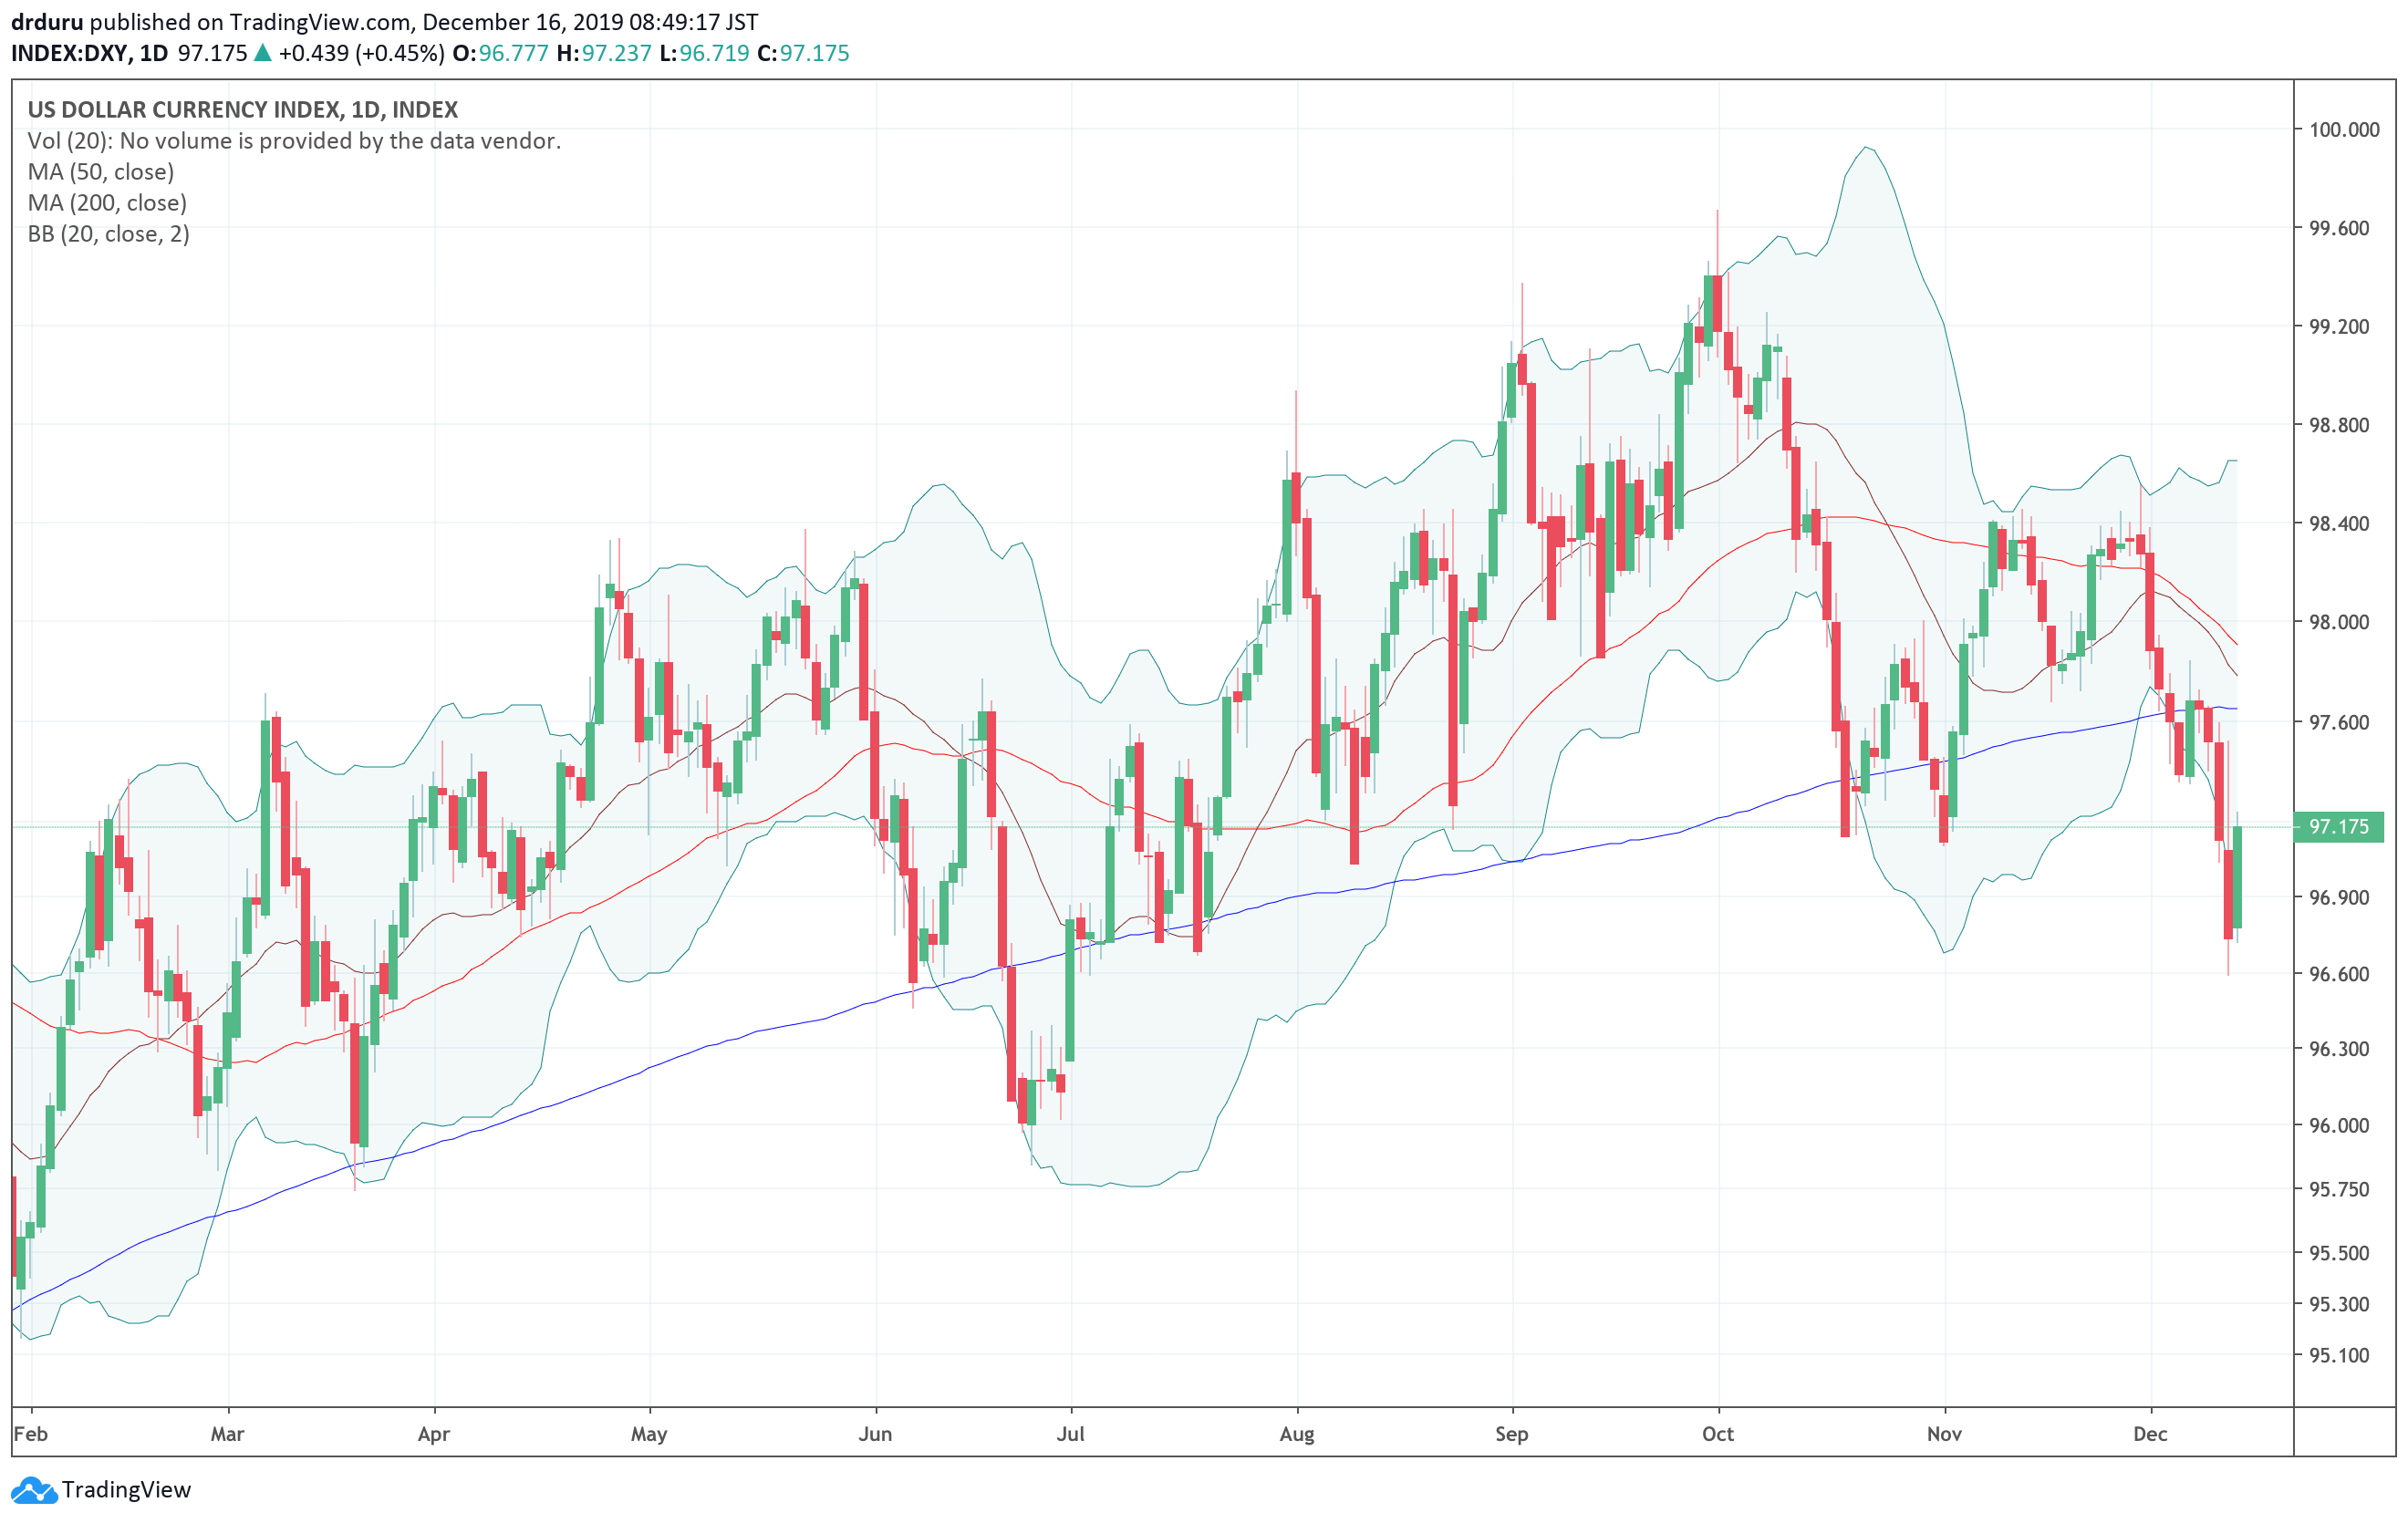 The U.S. dollar index (DXY) confirmed another 200DMA breakdown.